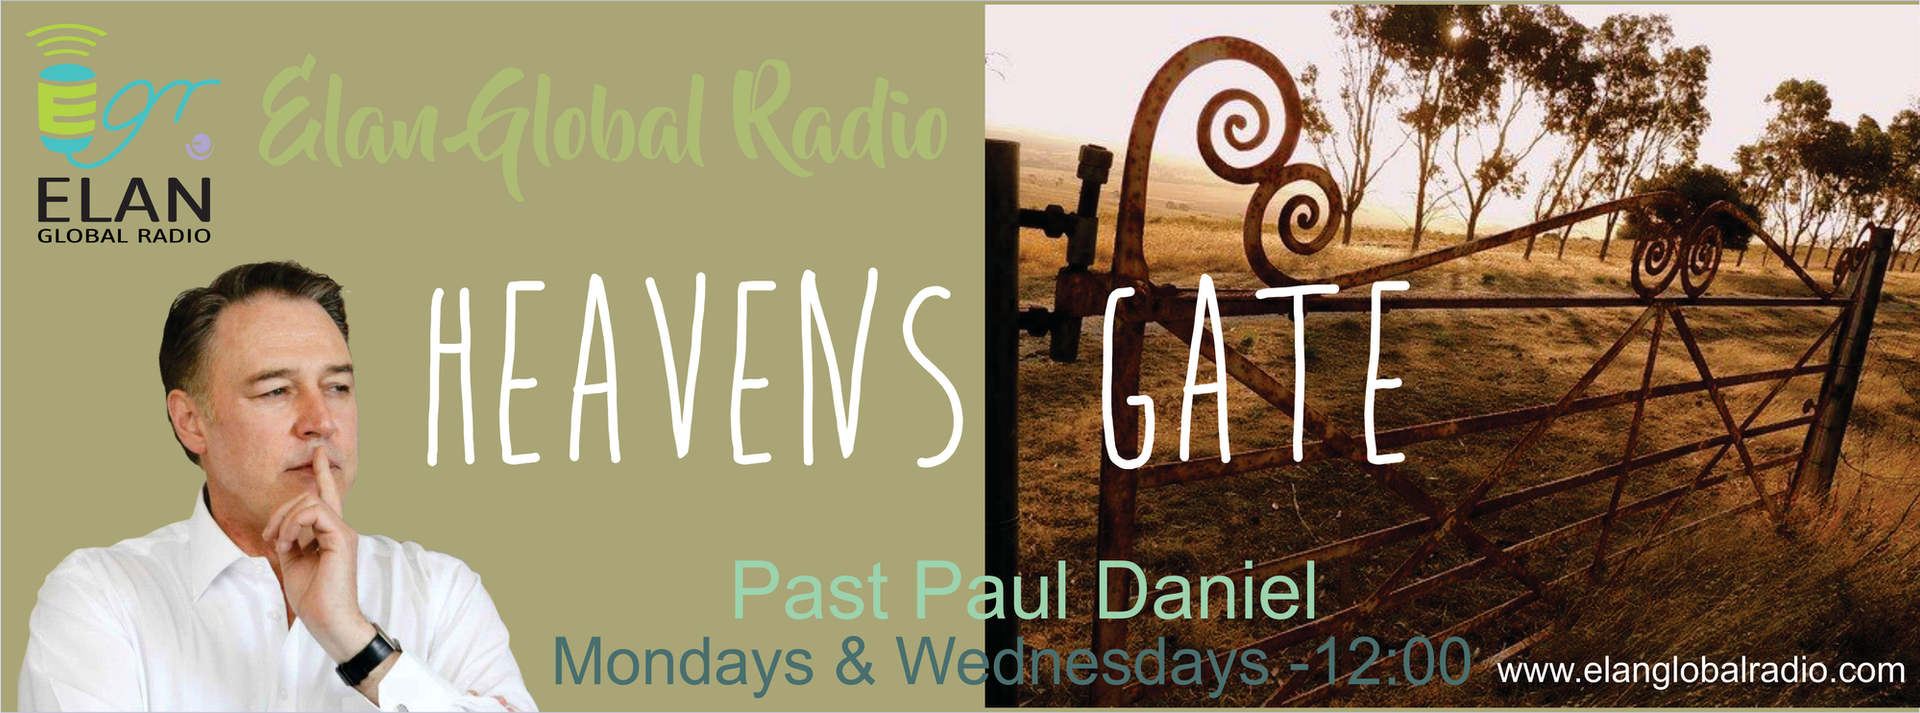 Heavens gate Past Paul Daniel.jpg